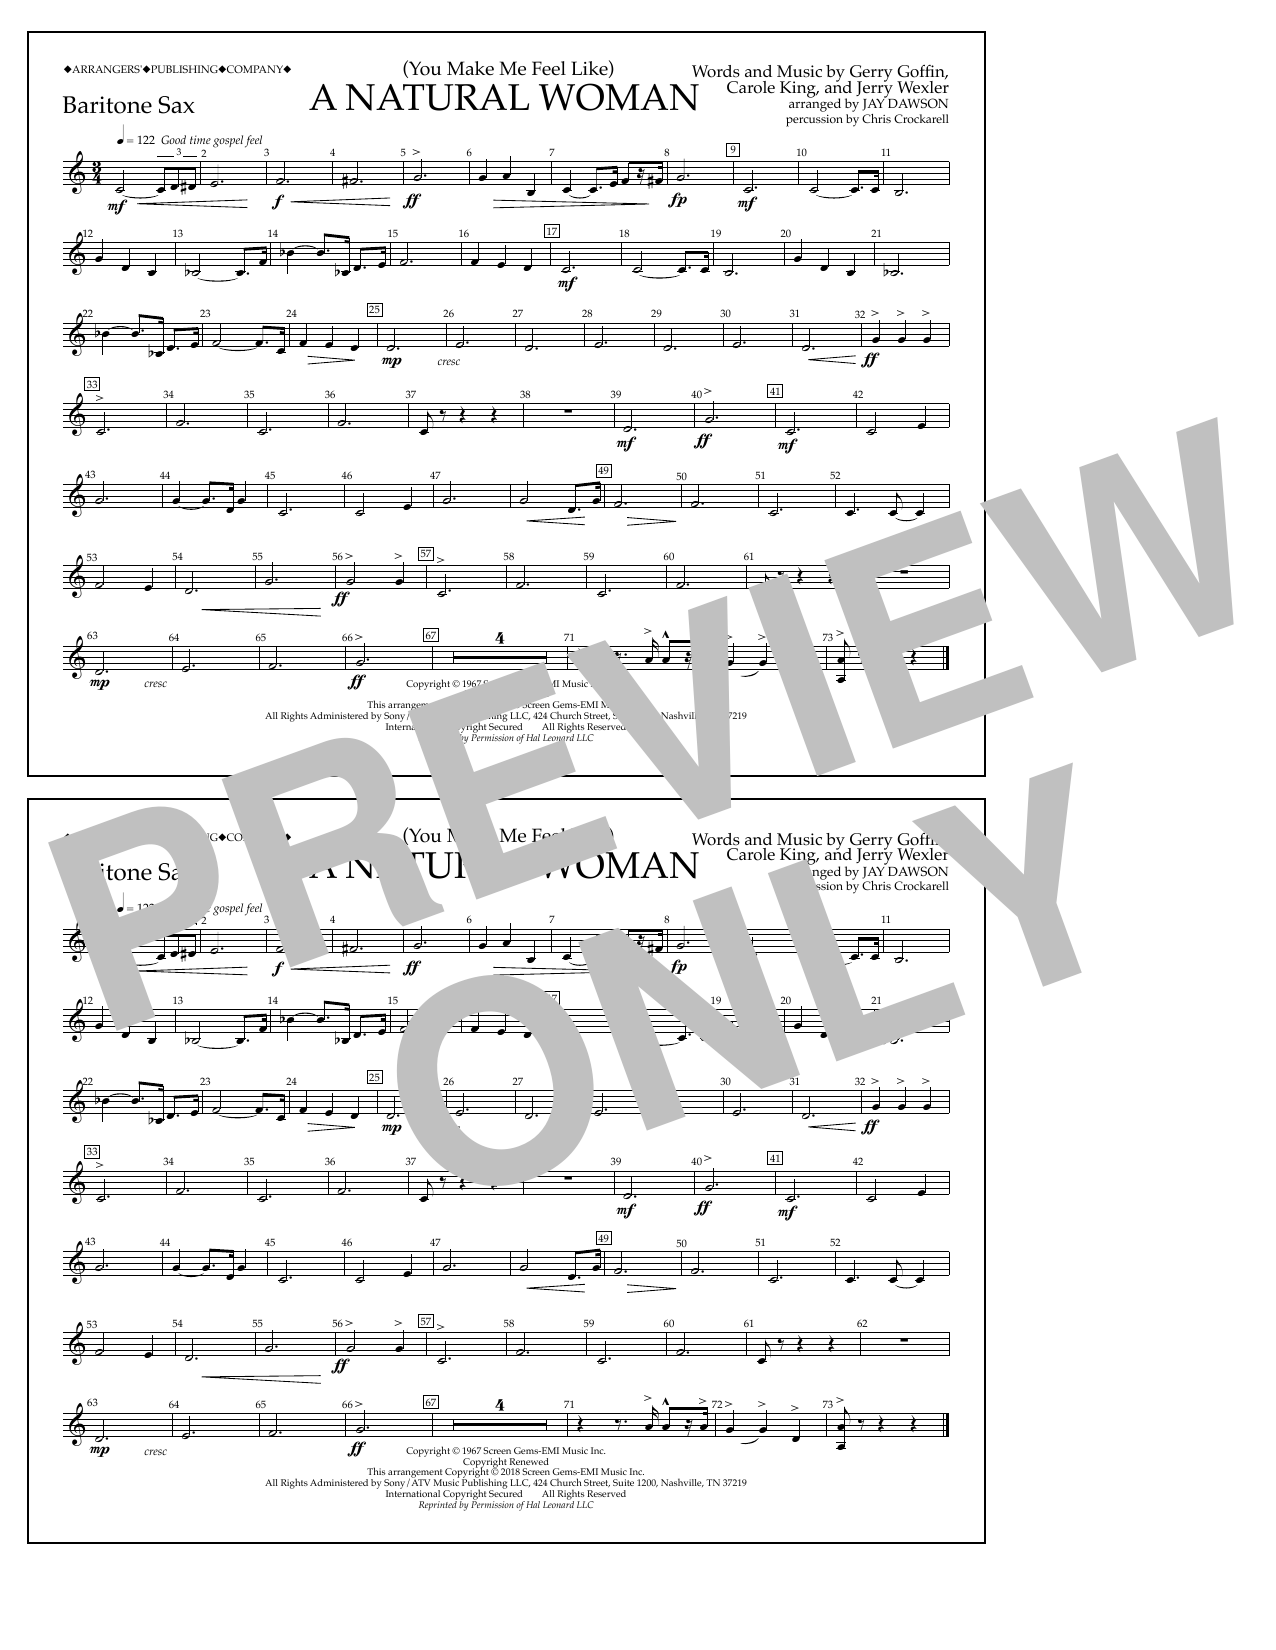 Download Aretha Franklin '(You Make Me Feel Like) A Natural Woman (arr. Jay Dawson) - Baritone Sax' Digital Sheet Music Notes & Chords and start playing in minutes